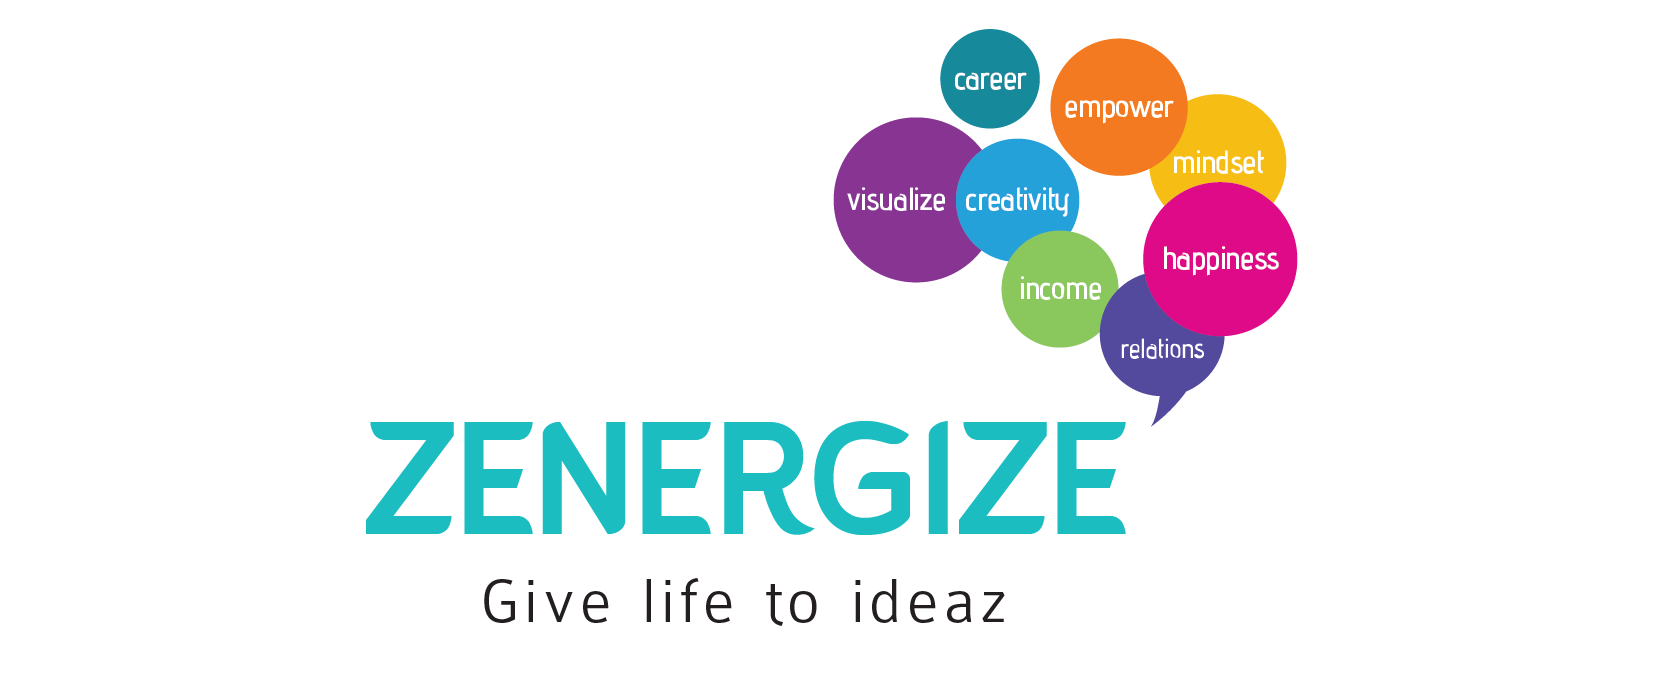 Zenergize Yourself